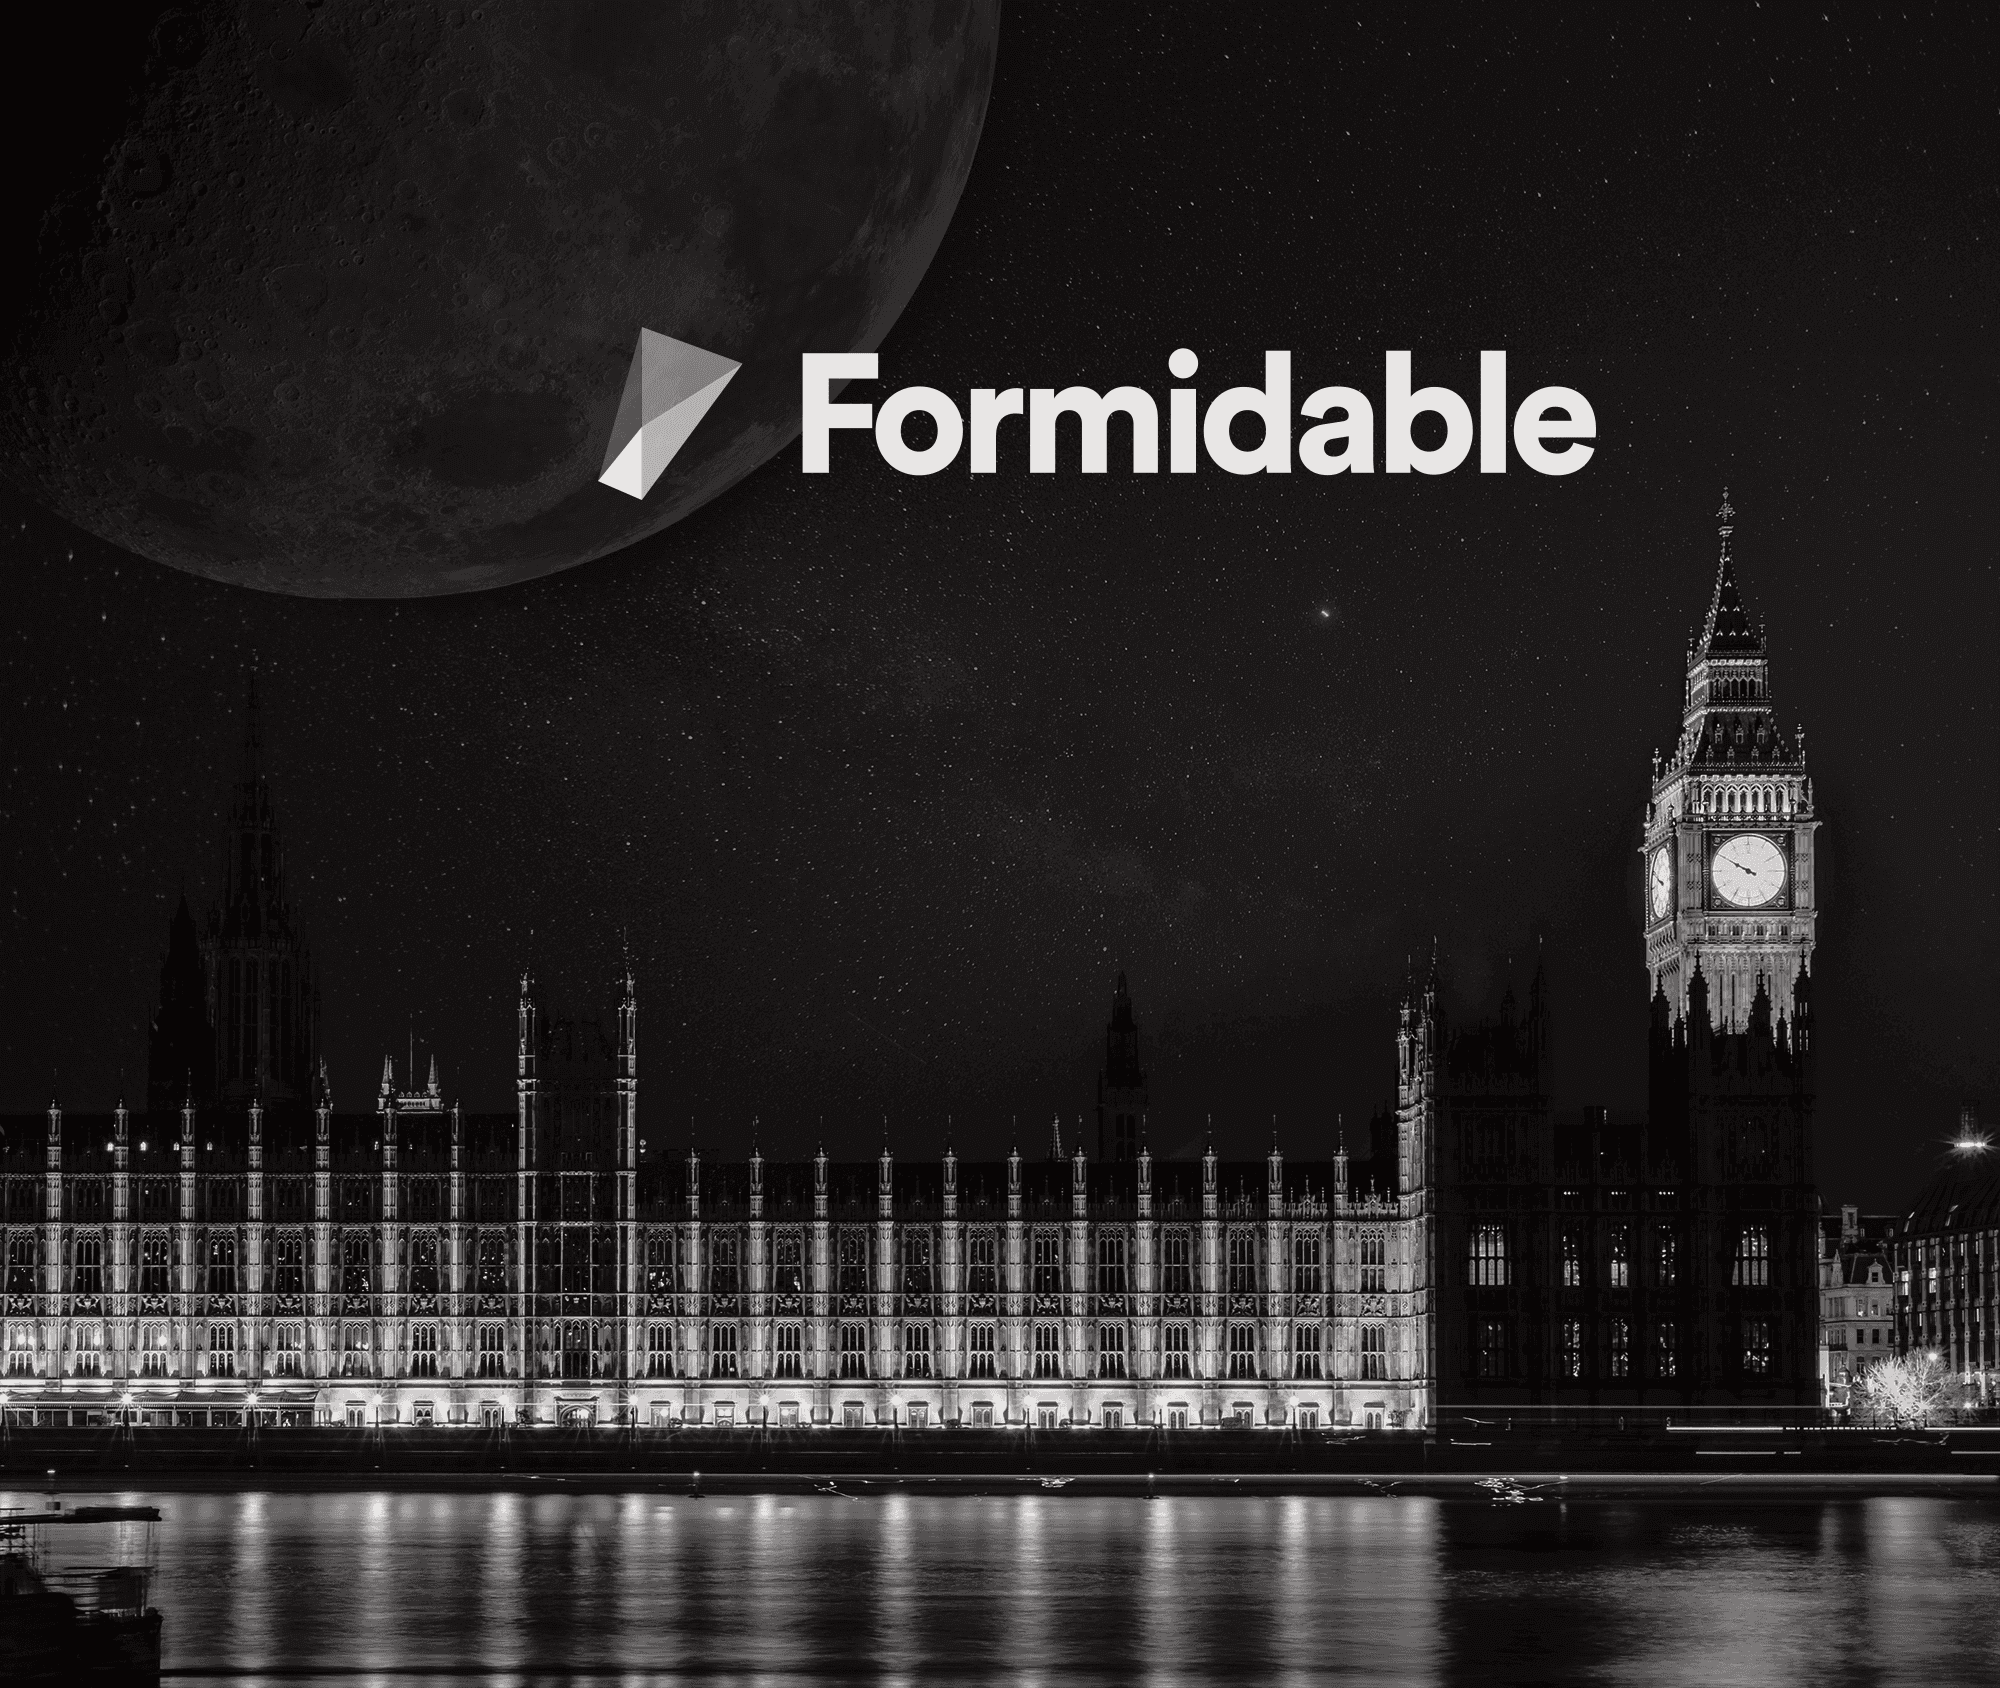 Formidable logo on London night sky